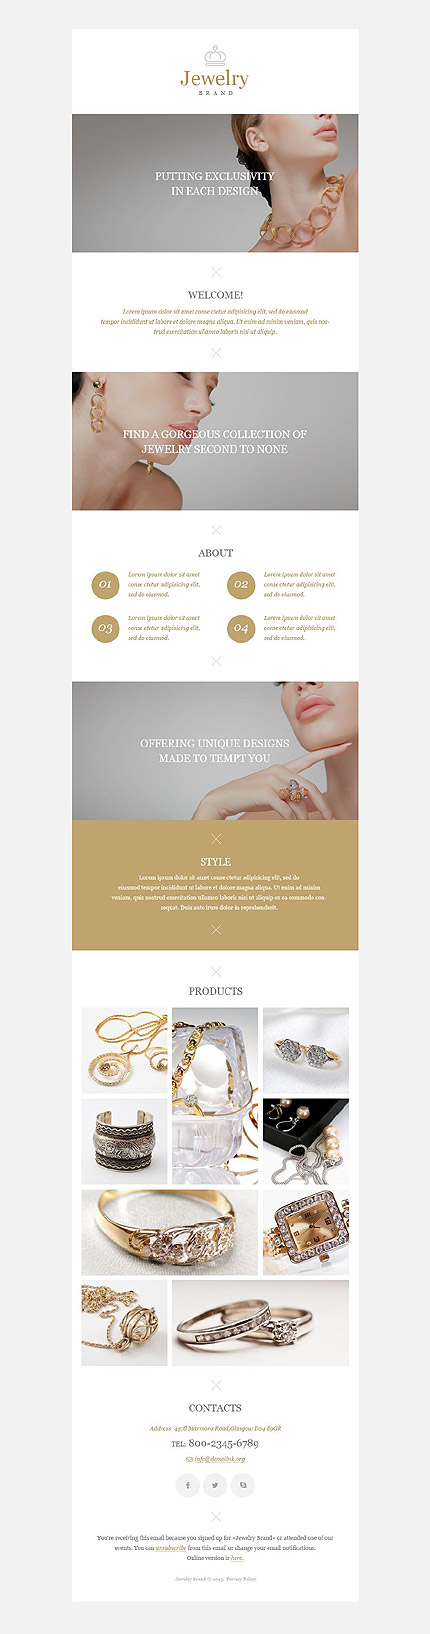 Template 52988 - Jewelry Brand Responsive Newsletter Template